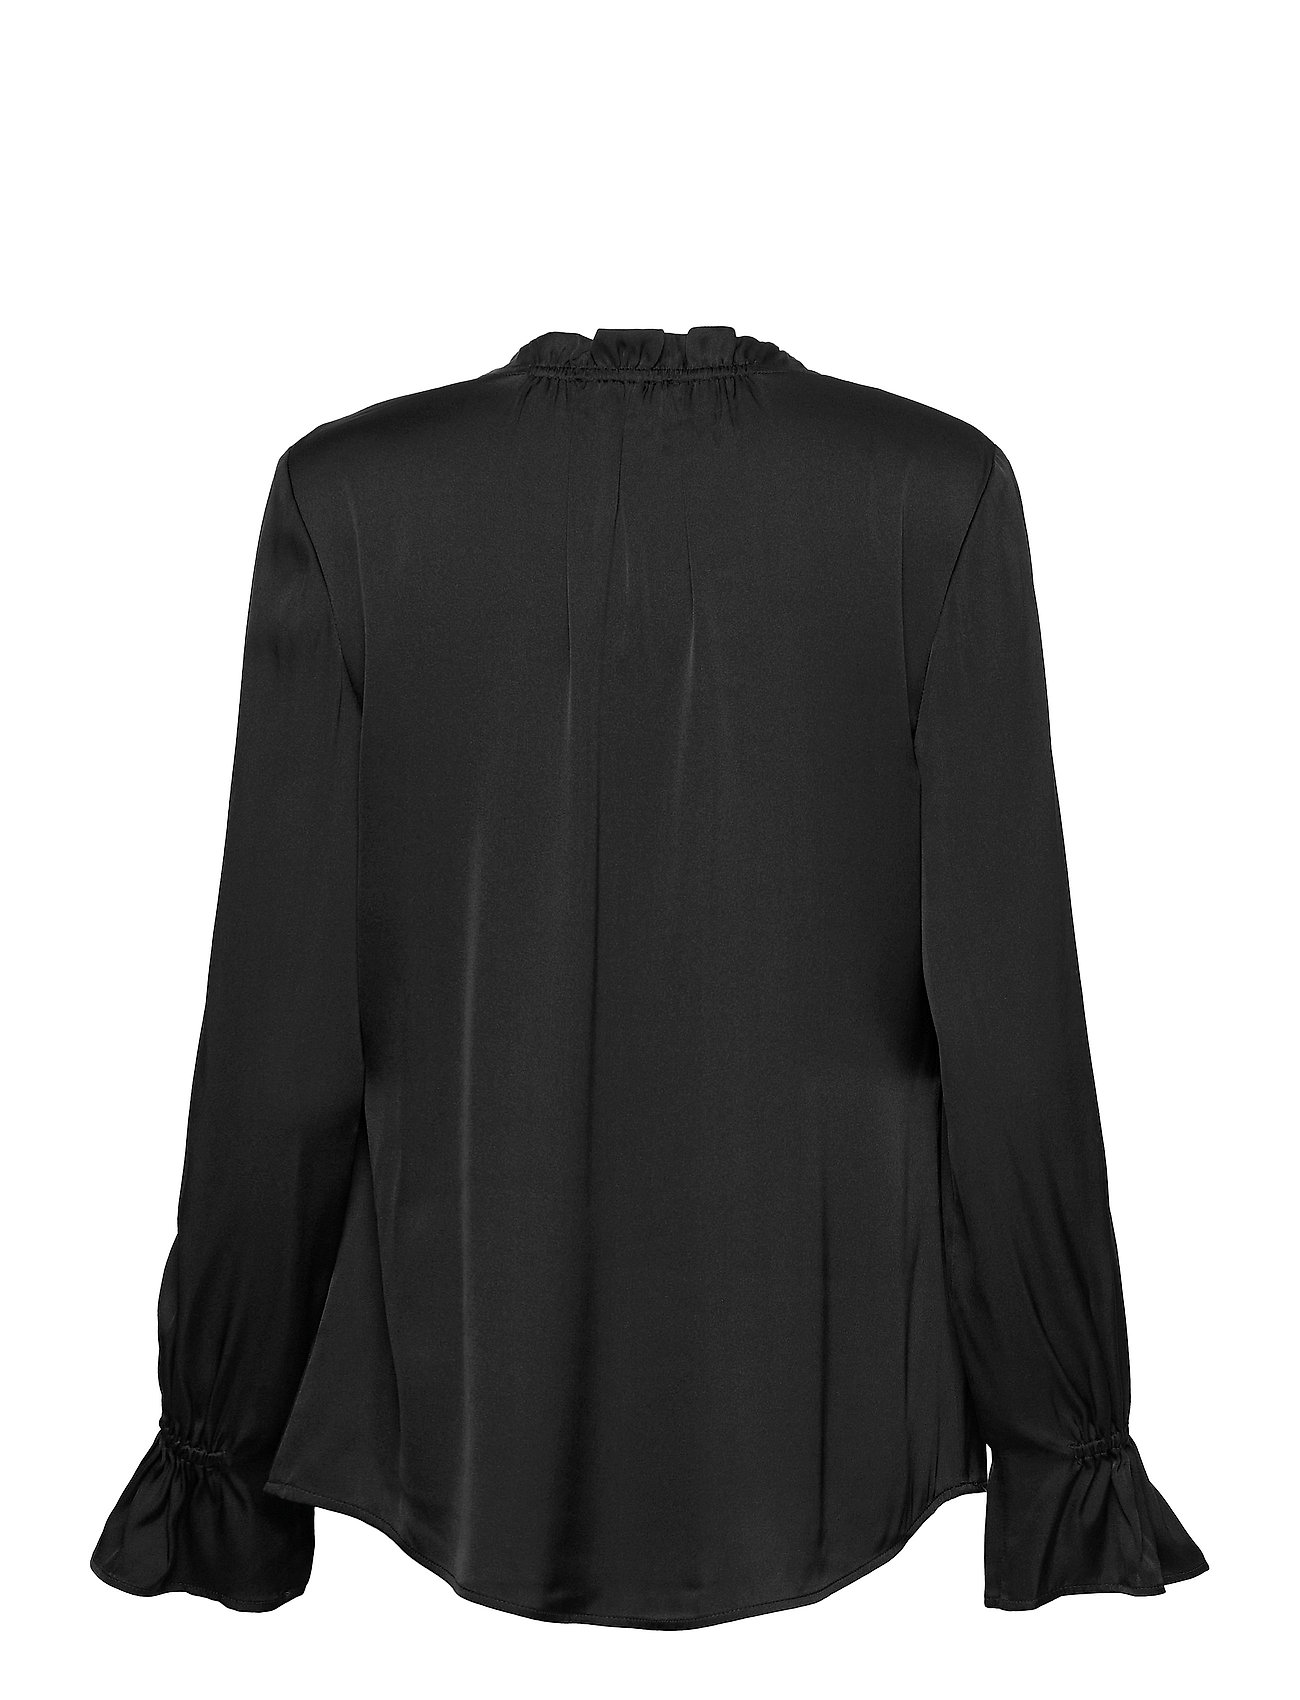 SAND - Satin Stretch - Raya F Sleeve - long sleeved blouses - black - 1